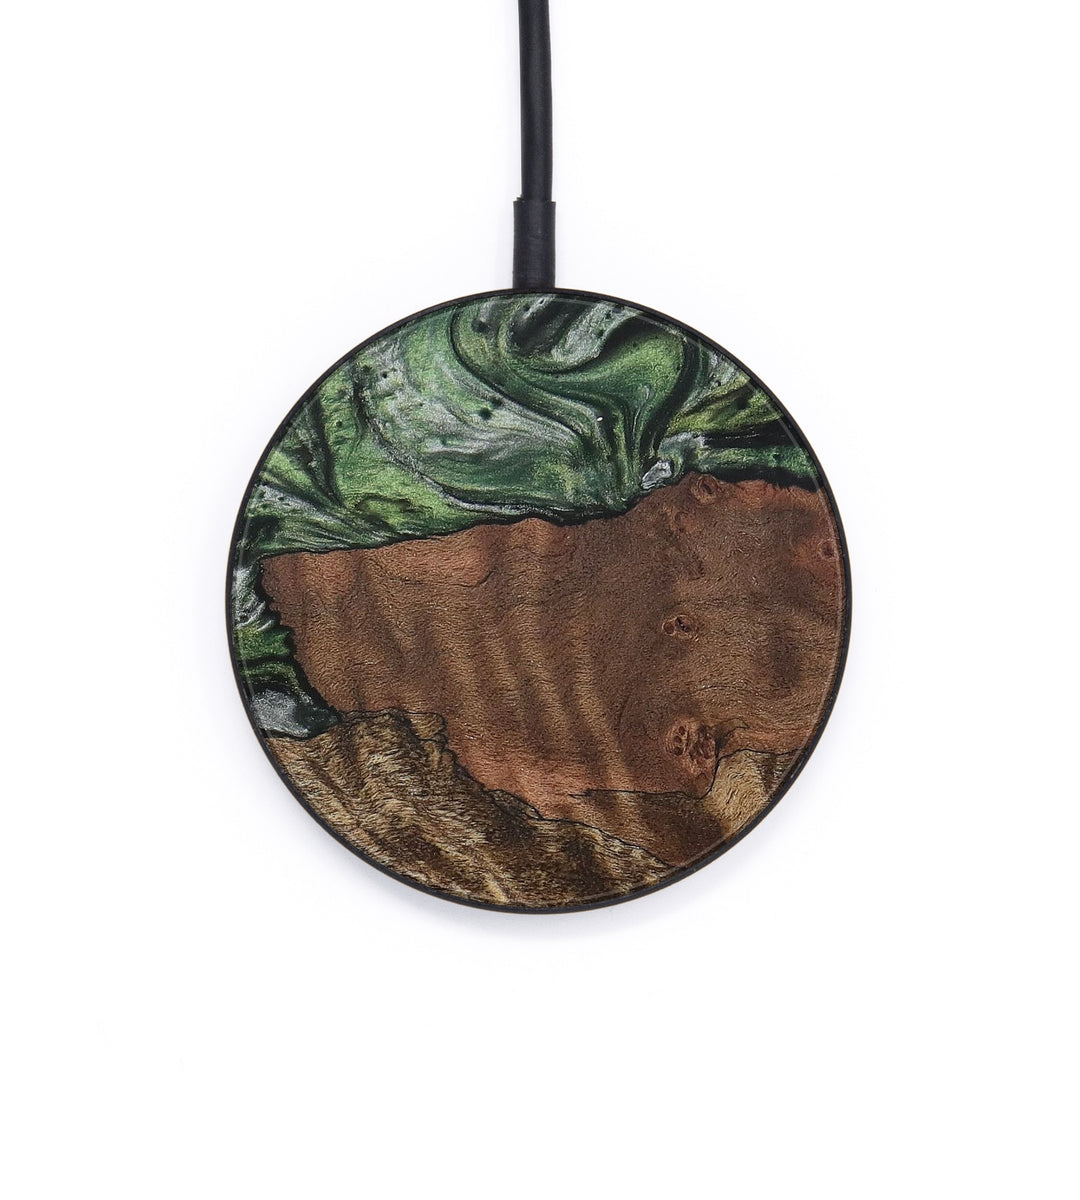 Circle Wood+Resin Wireless Charger - Koral (Dark Green, 387007)